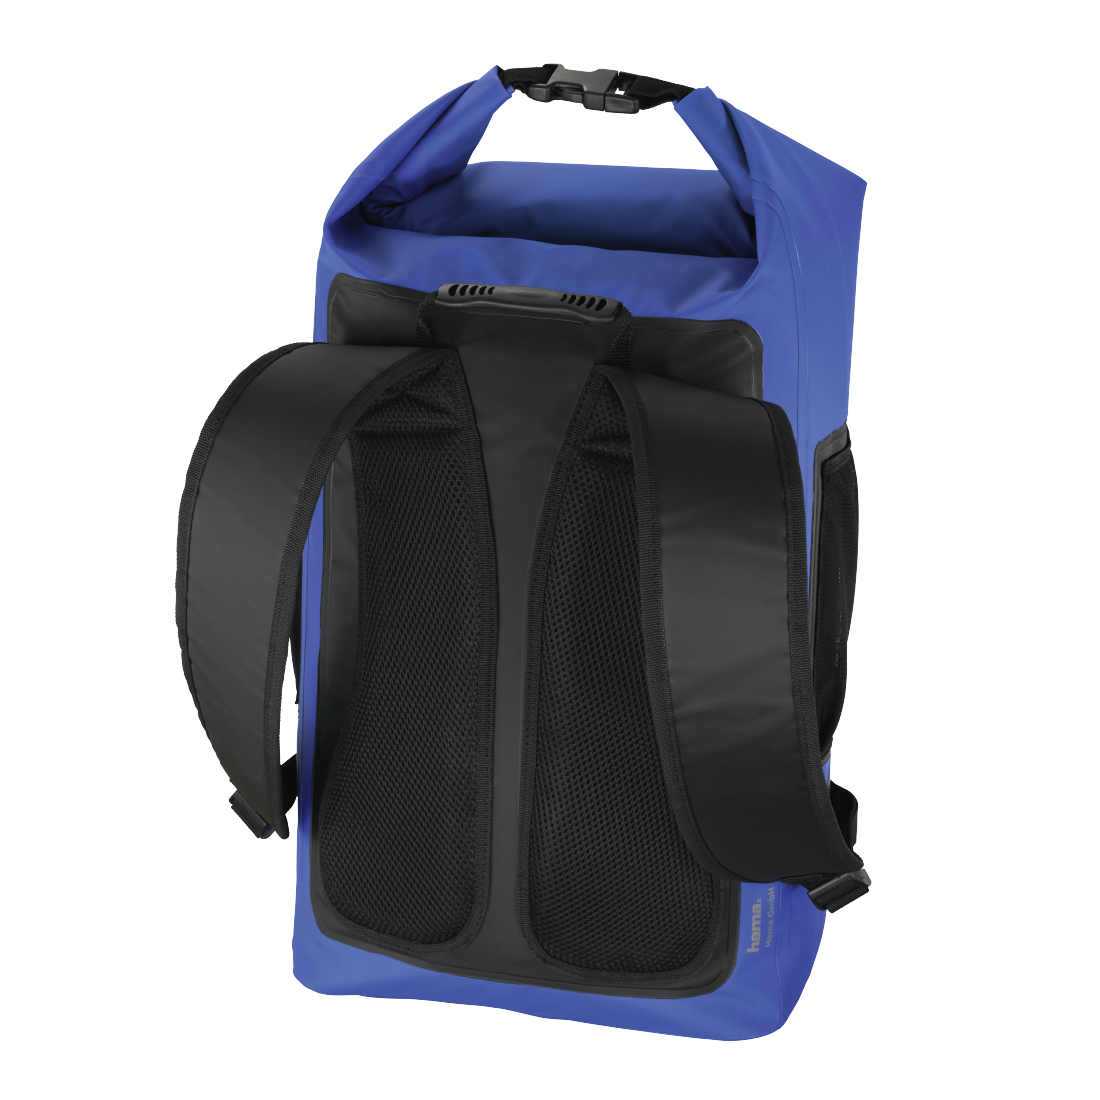 abx2 High-Res Image 2 - Hama, Outdoor-rugzak, 35 l, blauw